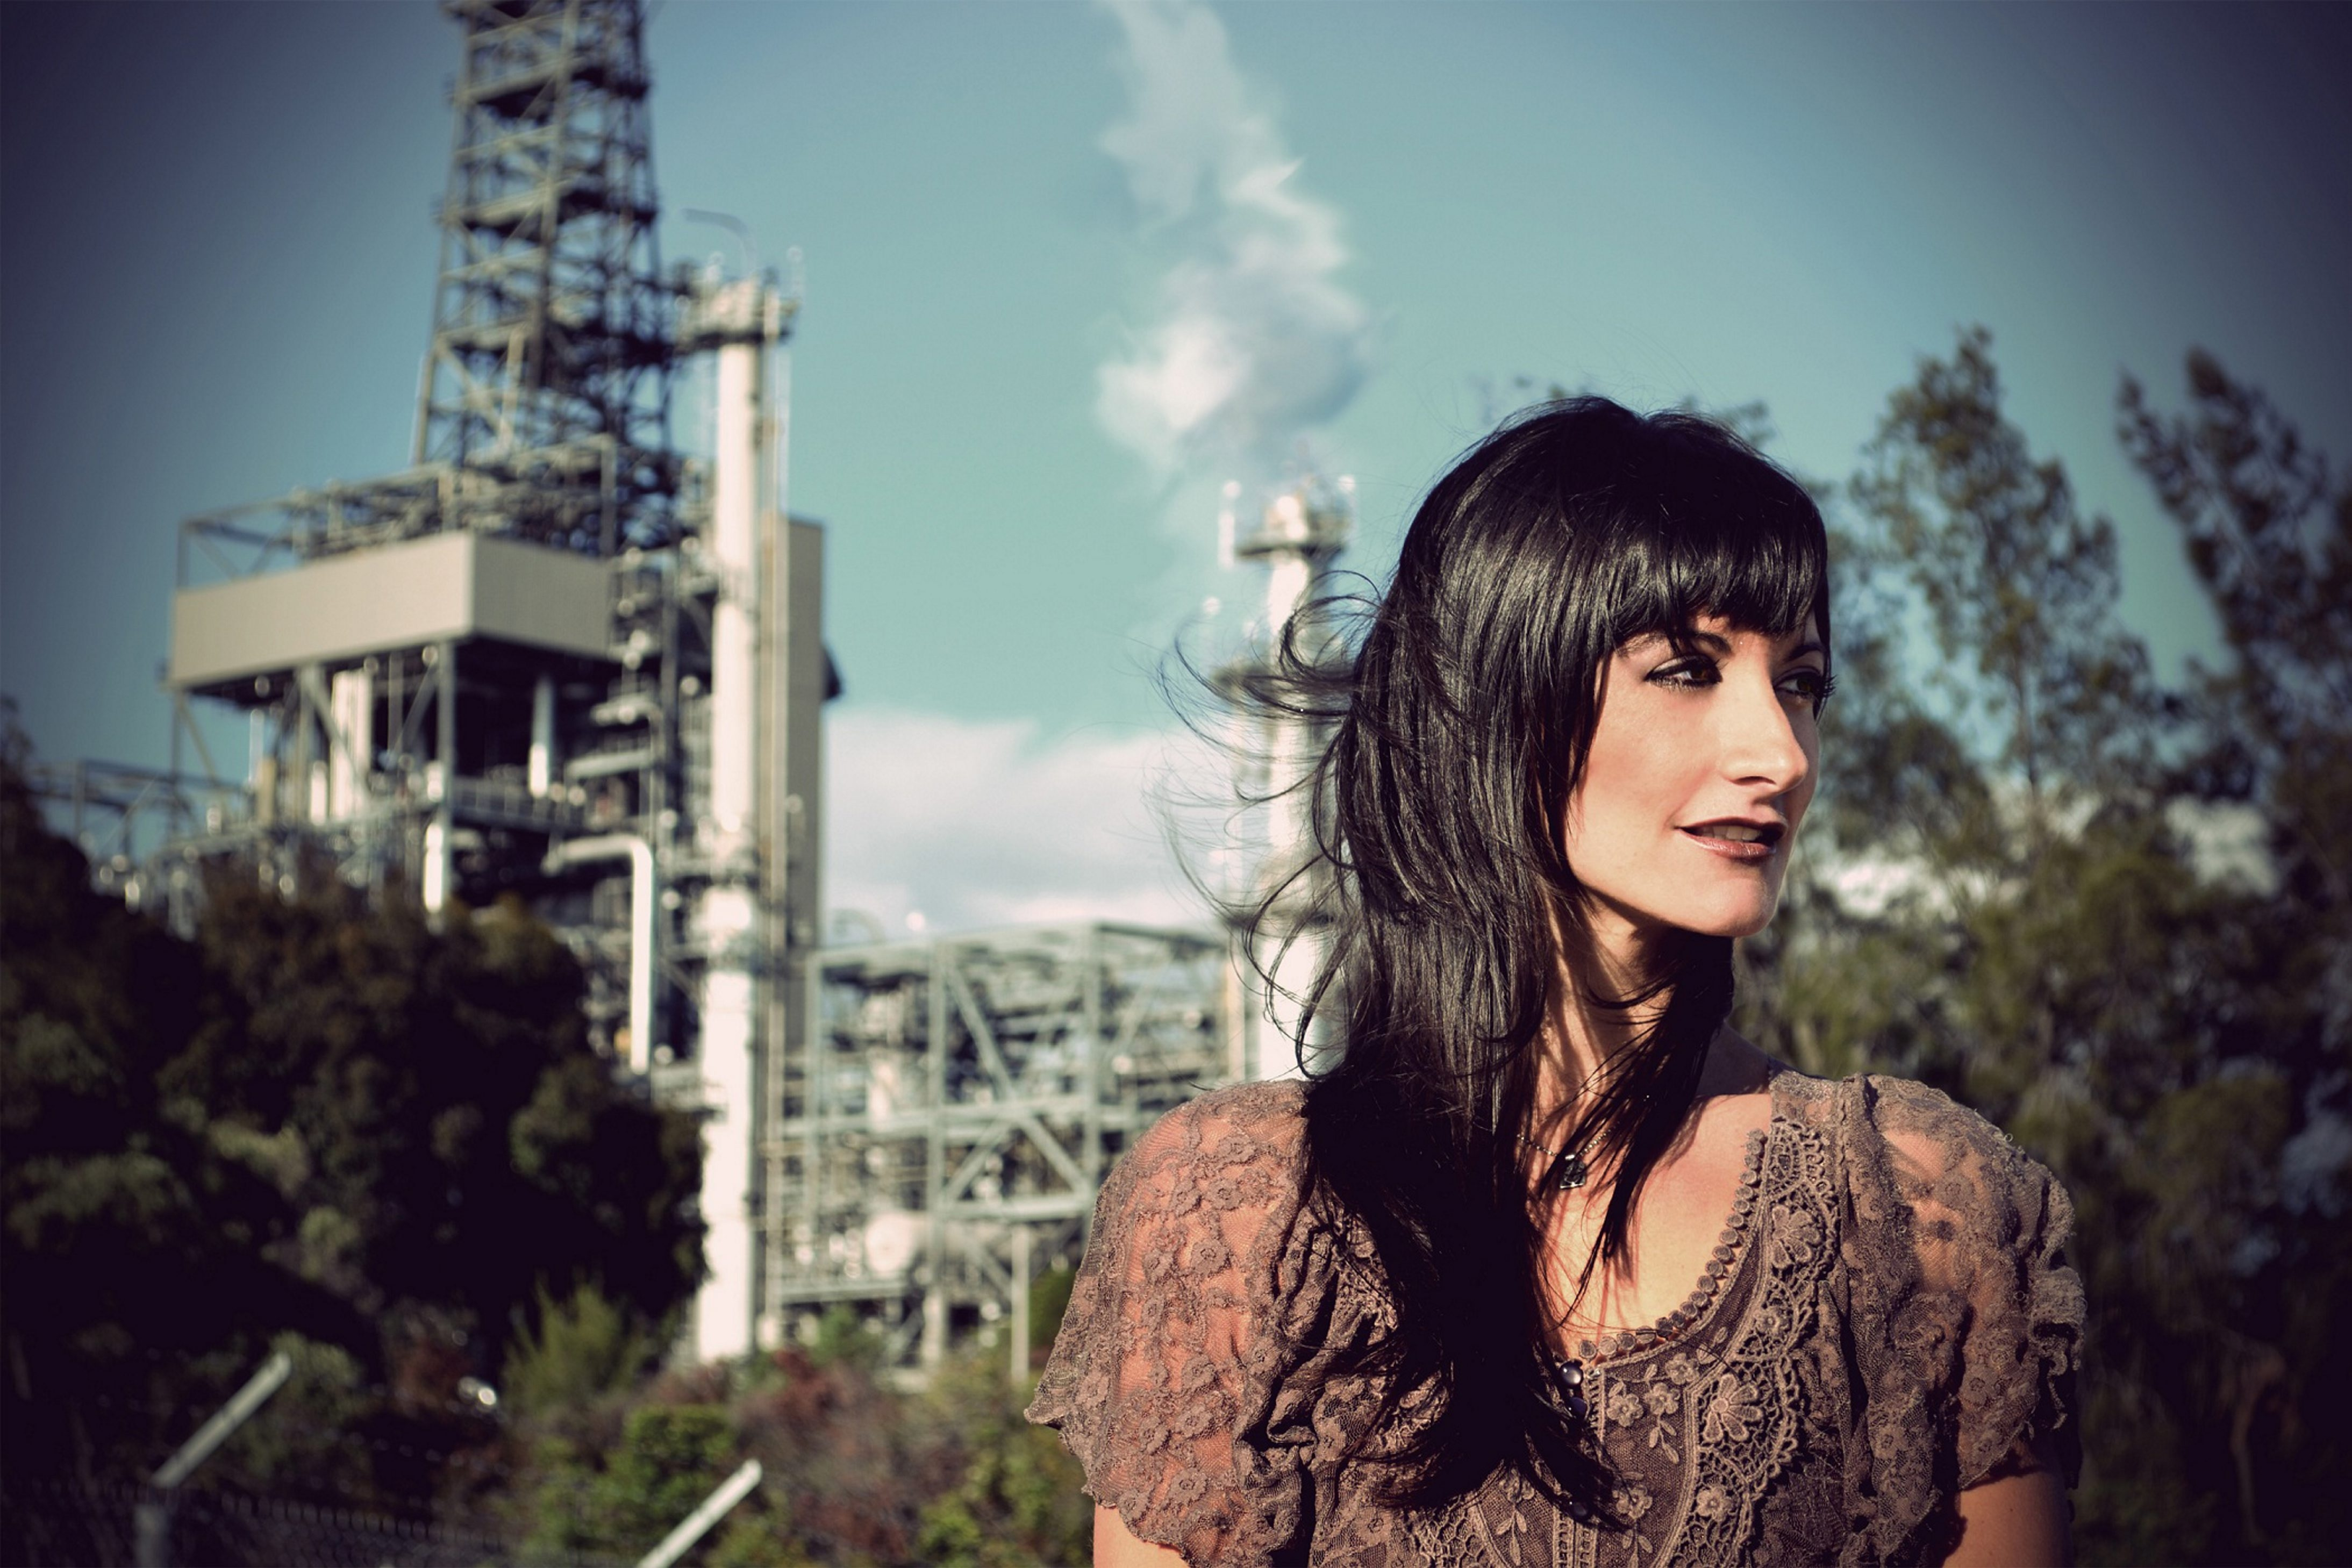 Corina Vacco hopes her book adds to the conversation about industrial pollution.